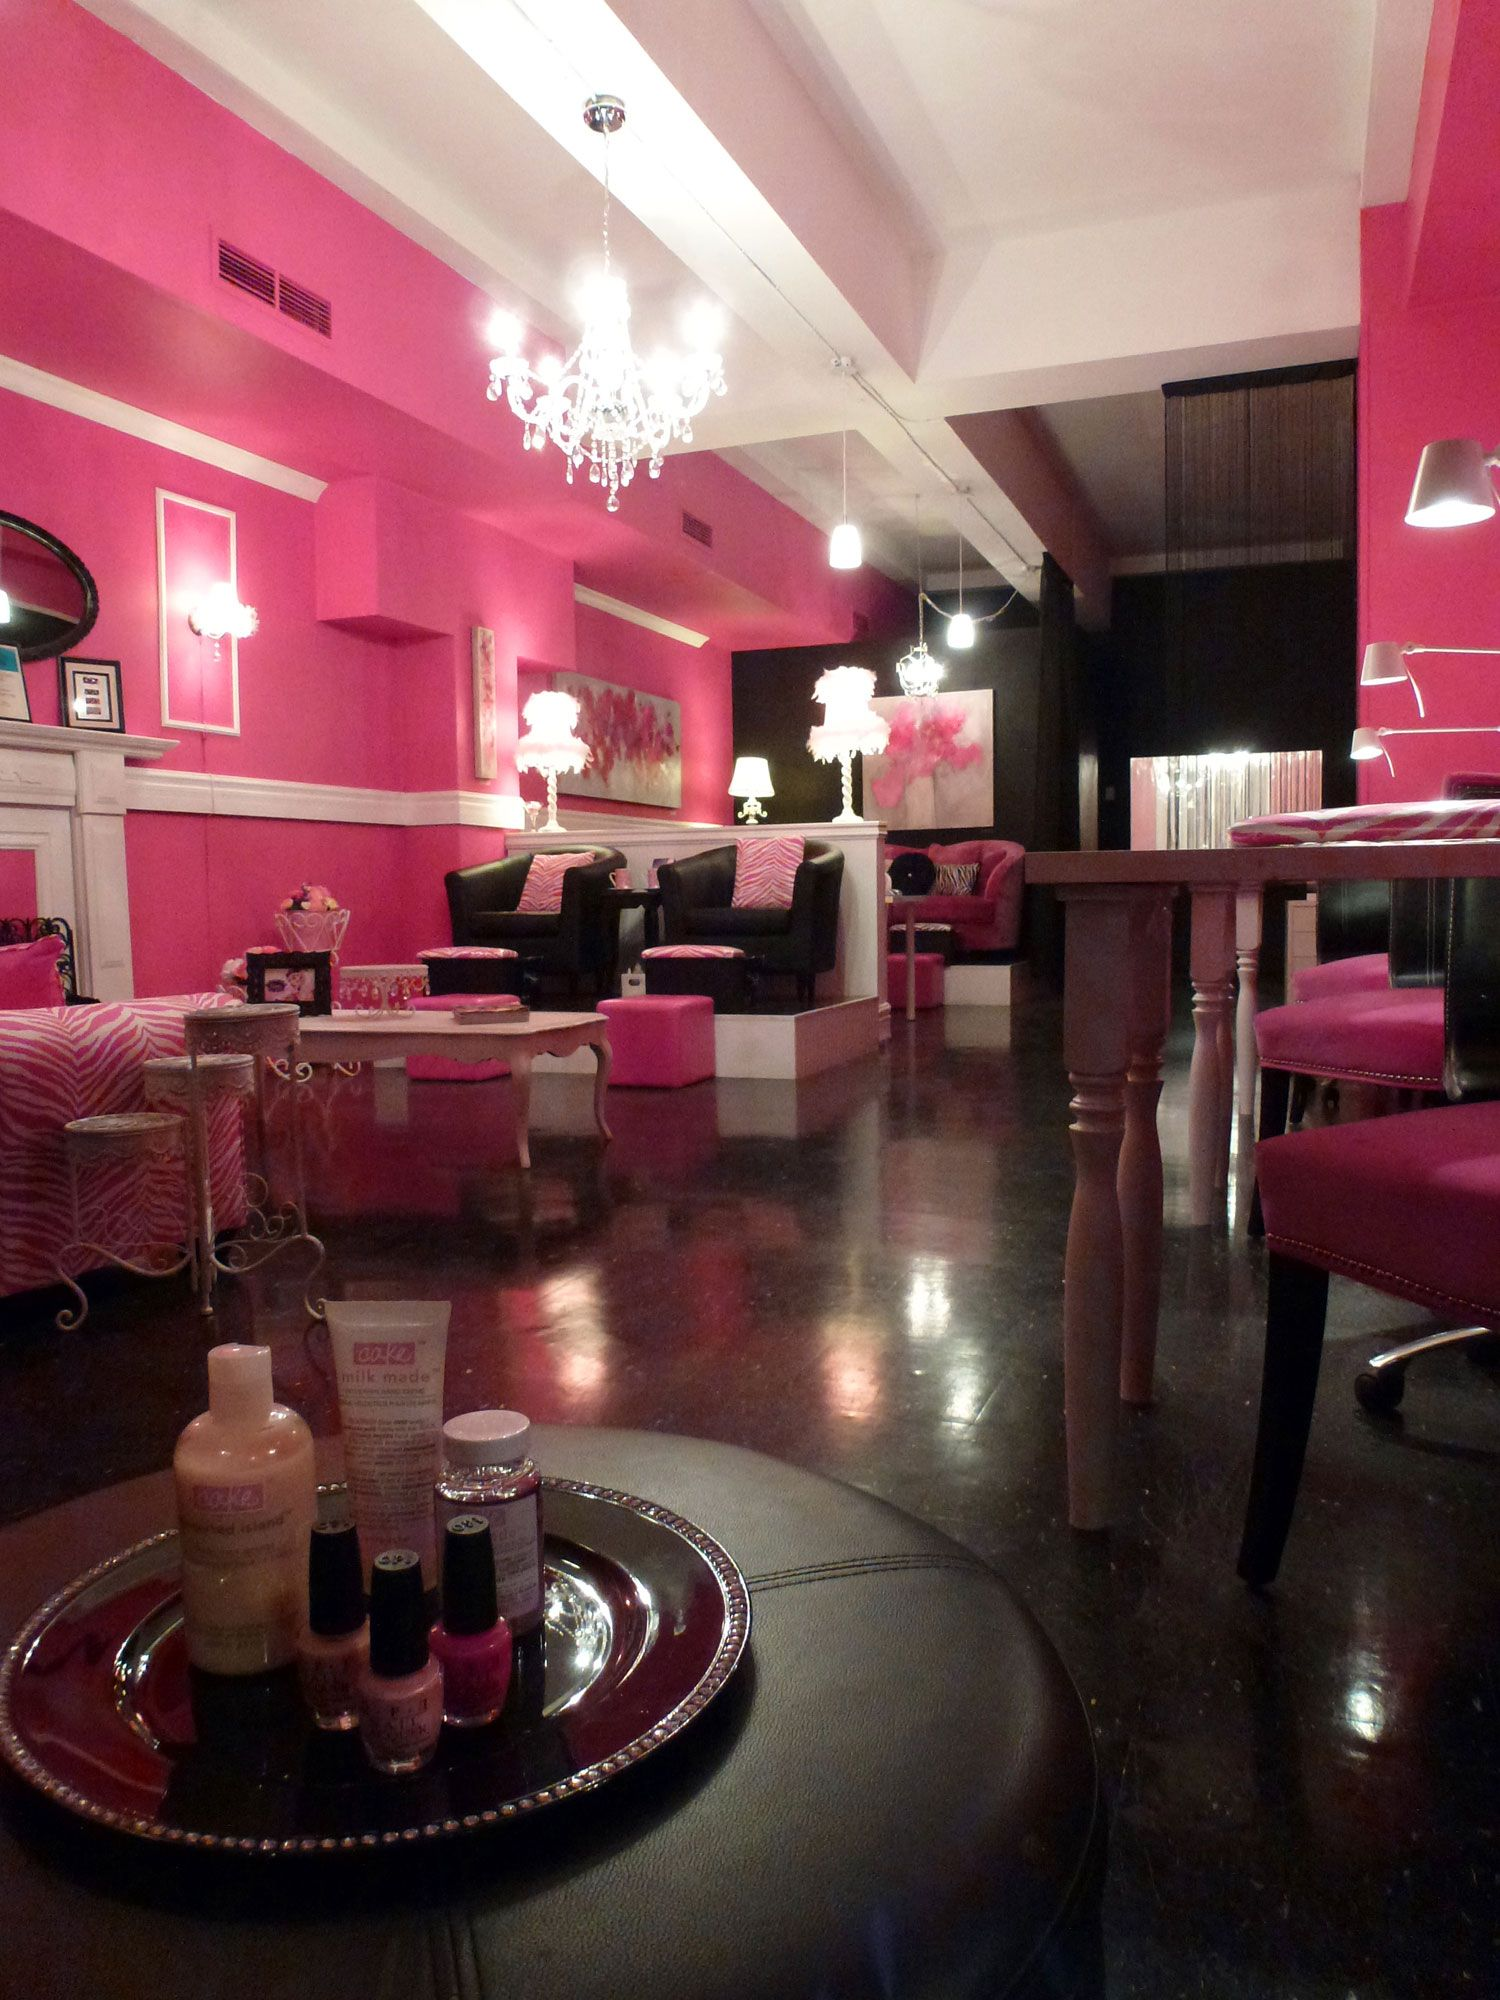 Pink Room With Images Nail Salon Decor Beauty Salon Decor